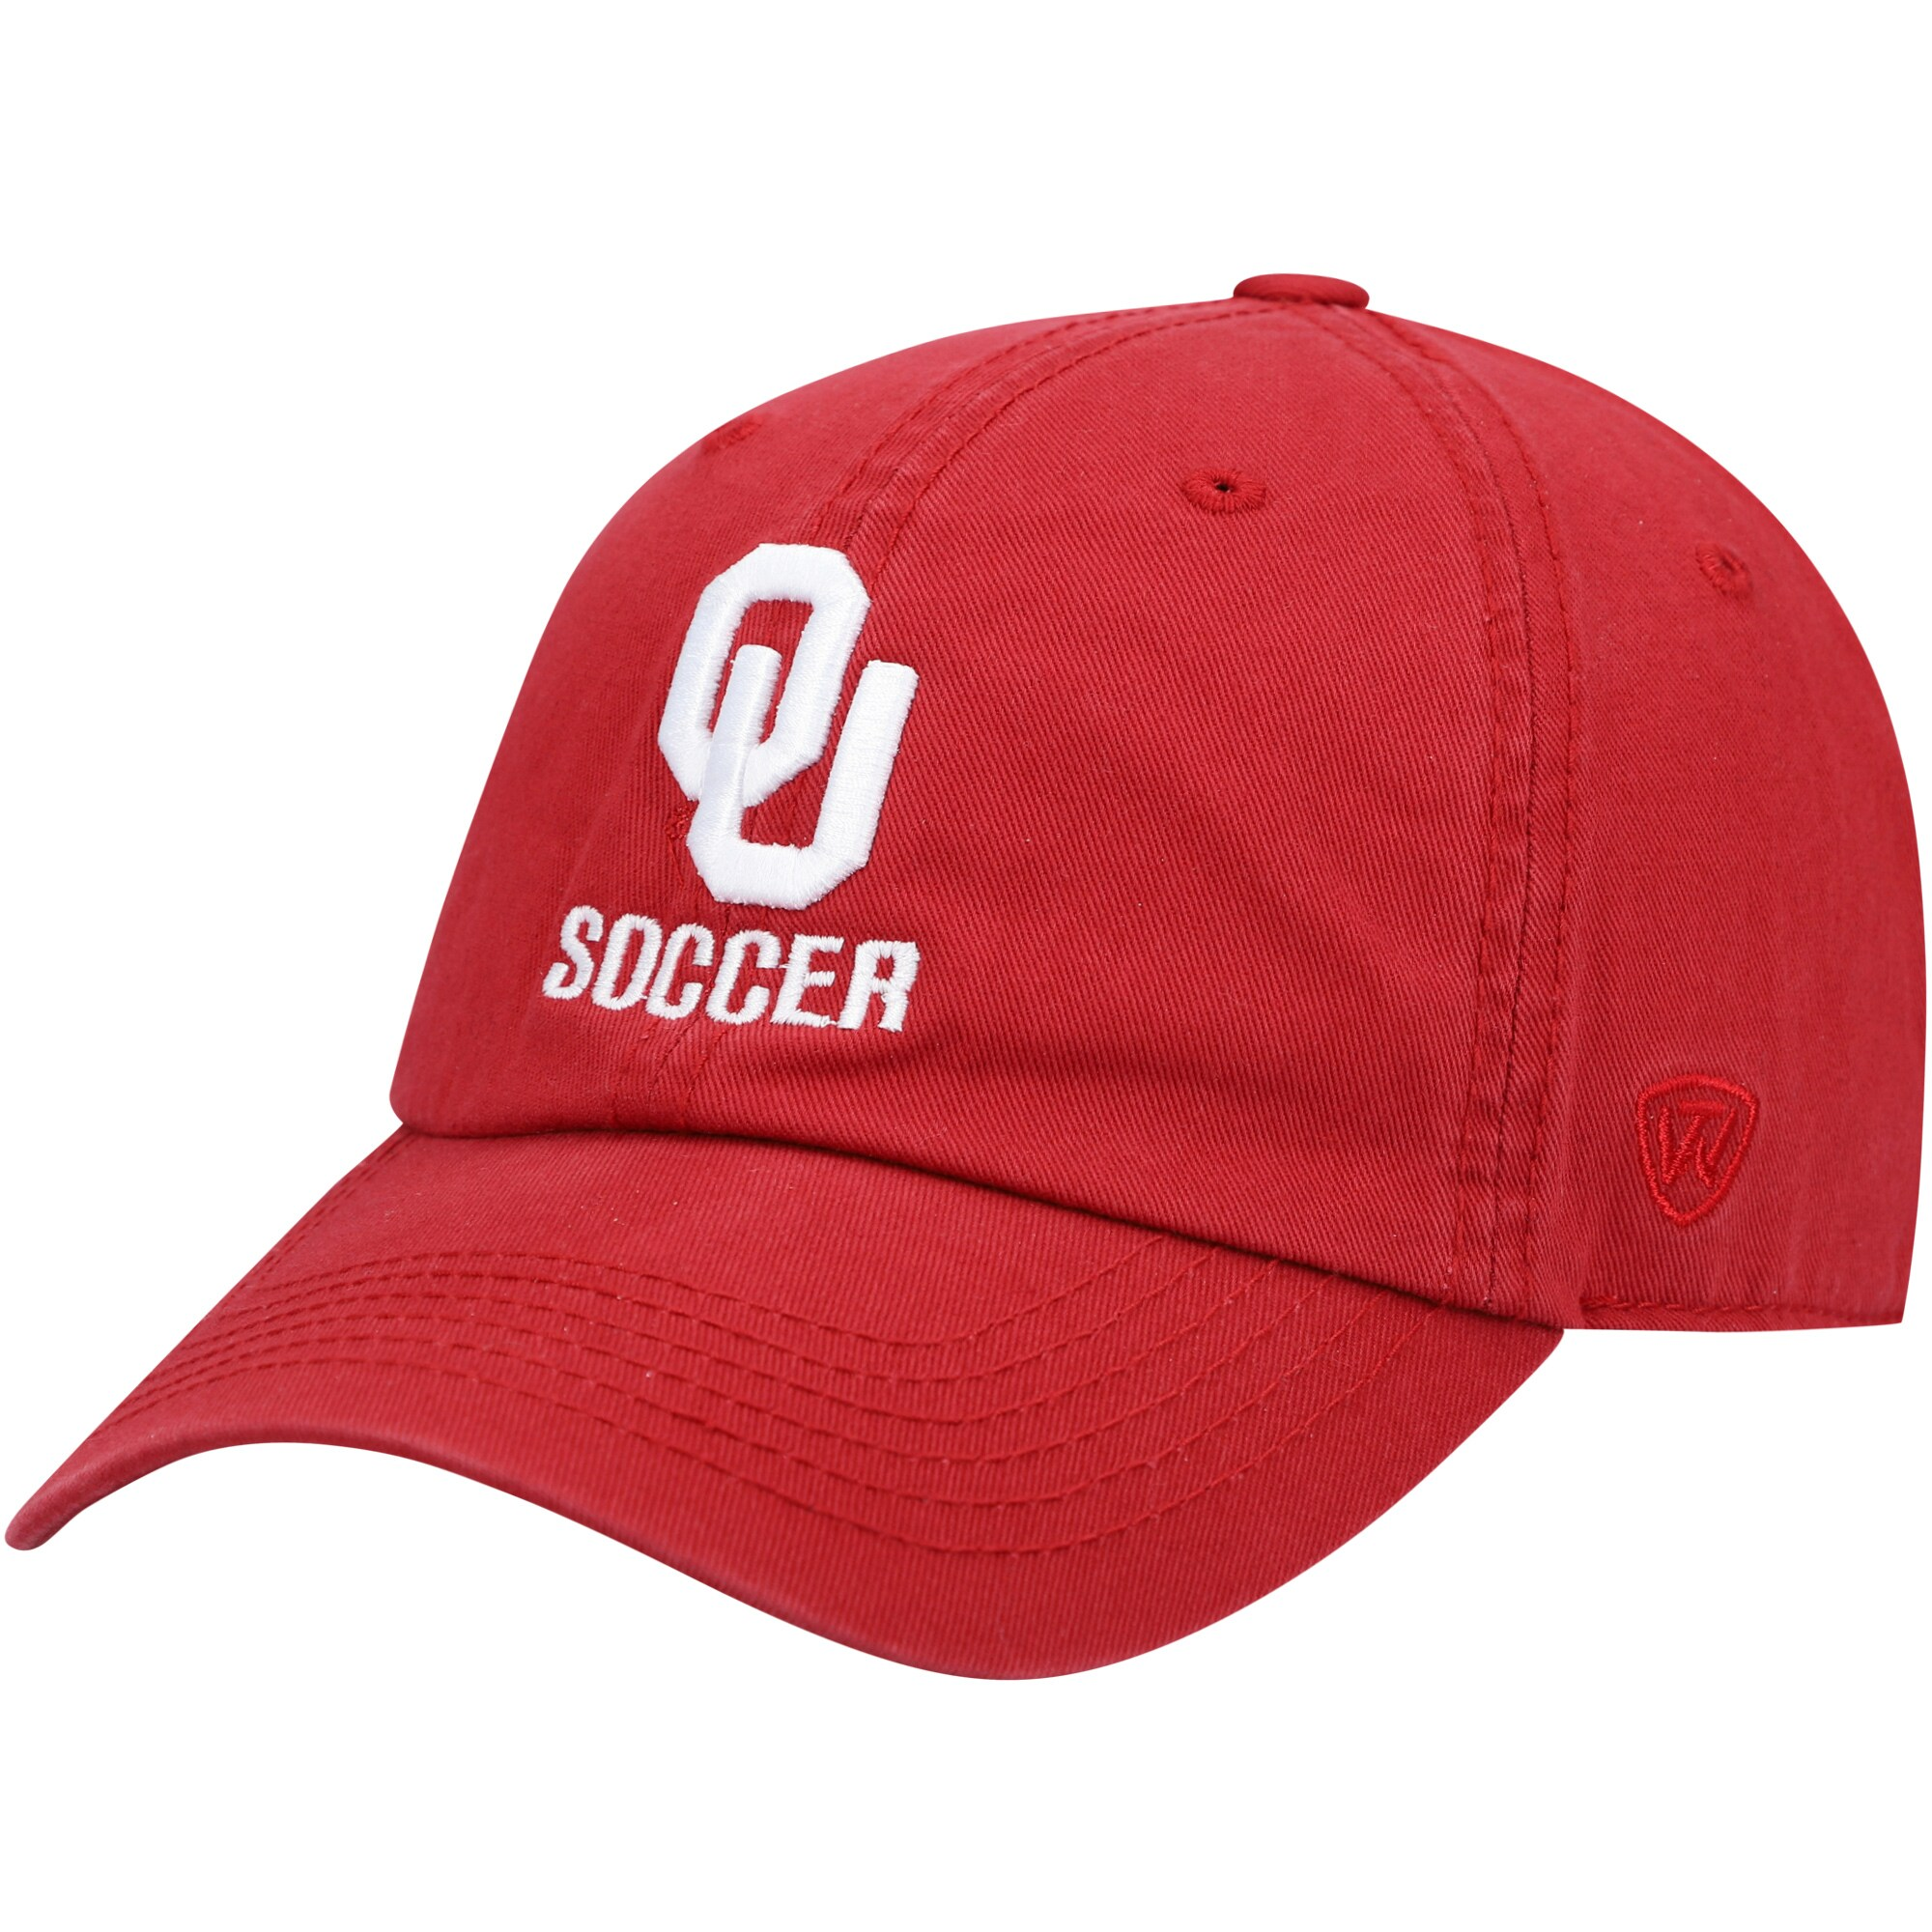 Oklahoma Sooners Top of the World Soccer Crew Adjustable Hat - Crimson